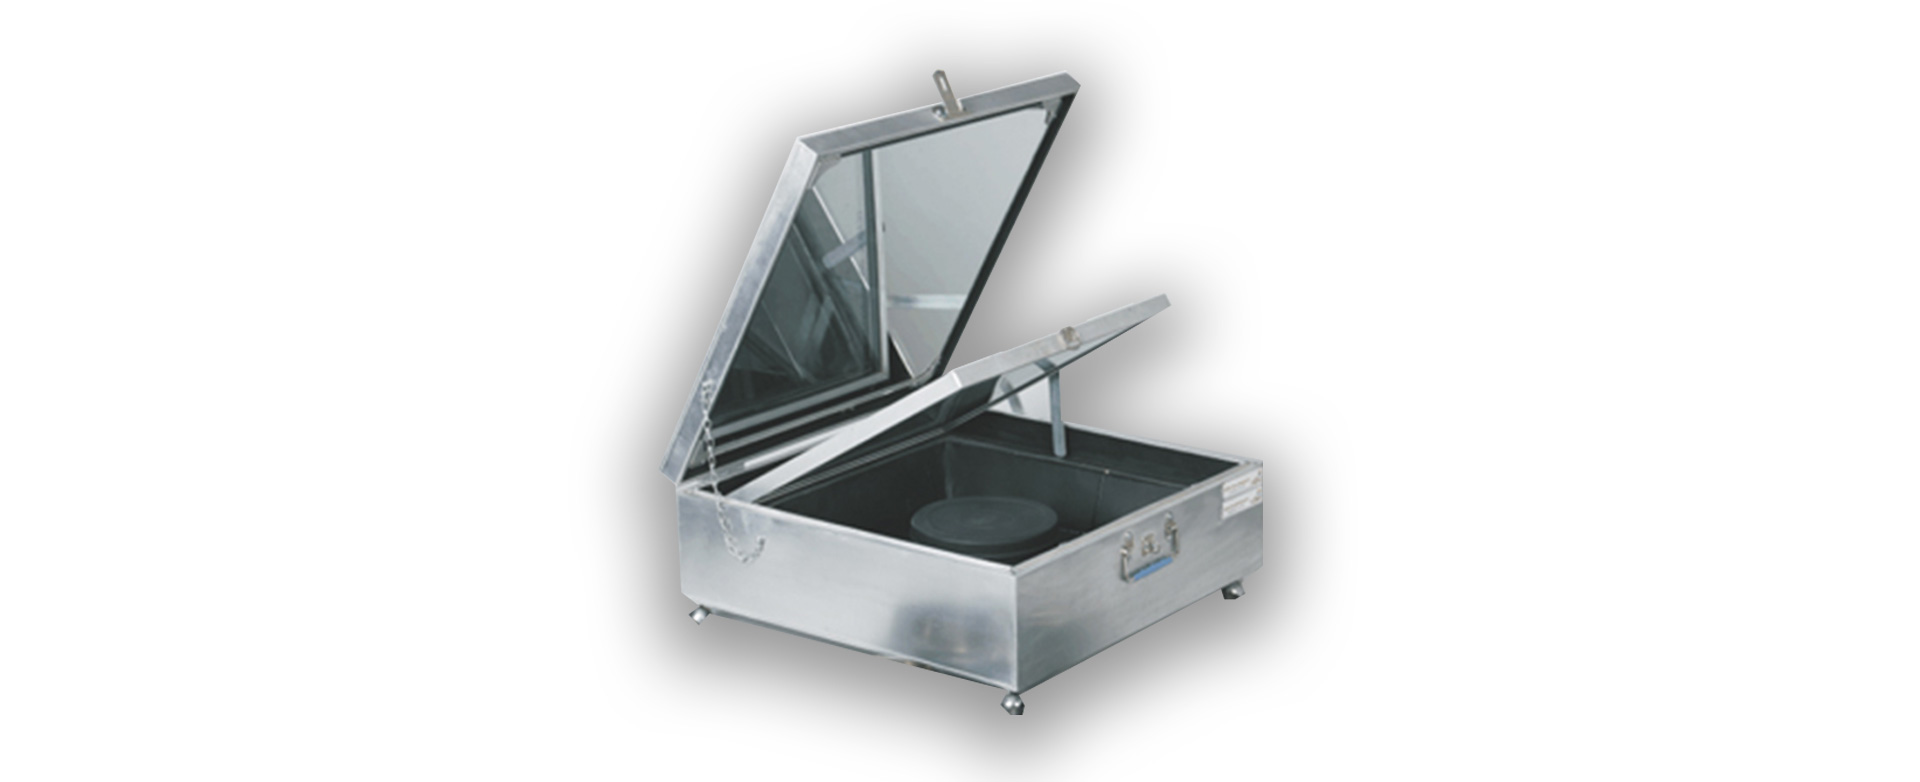 vesat solar box type cooker